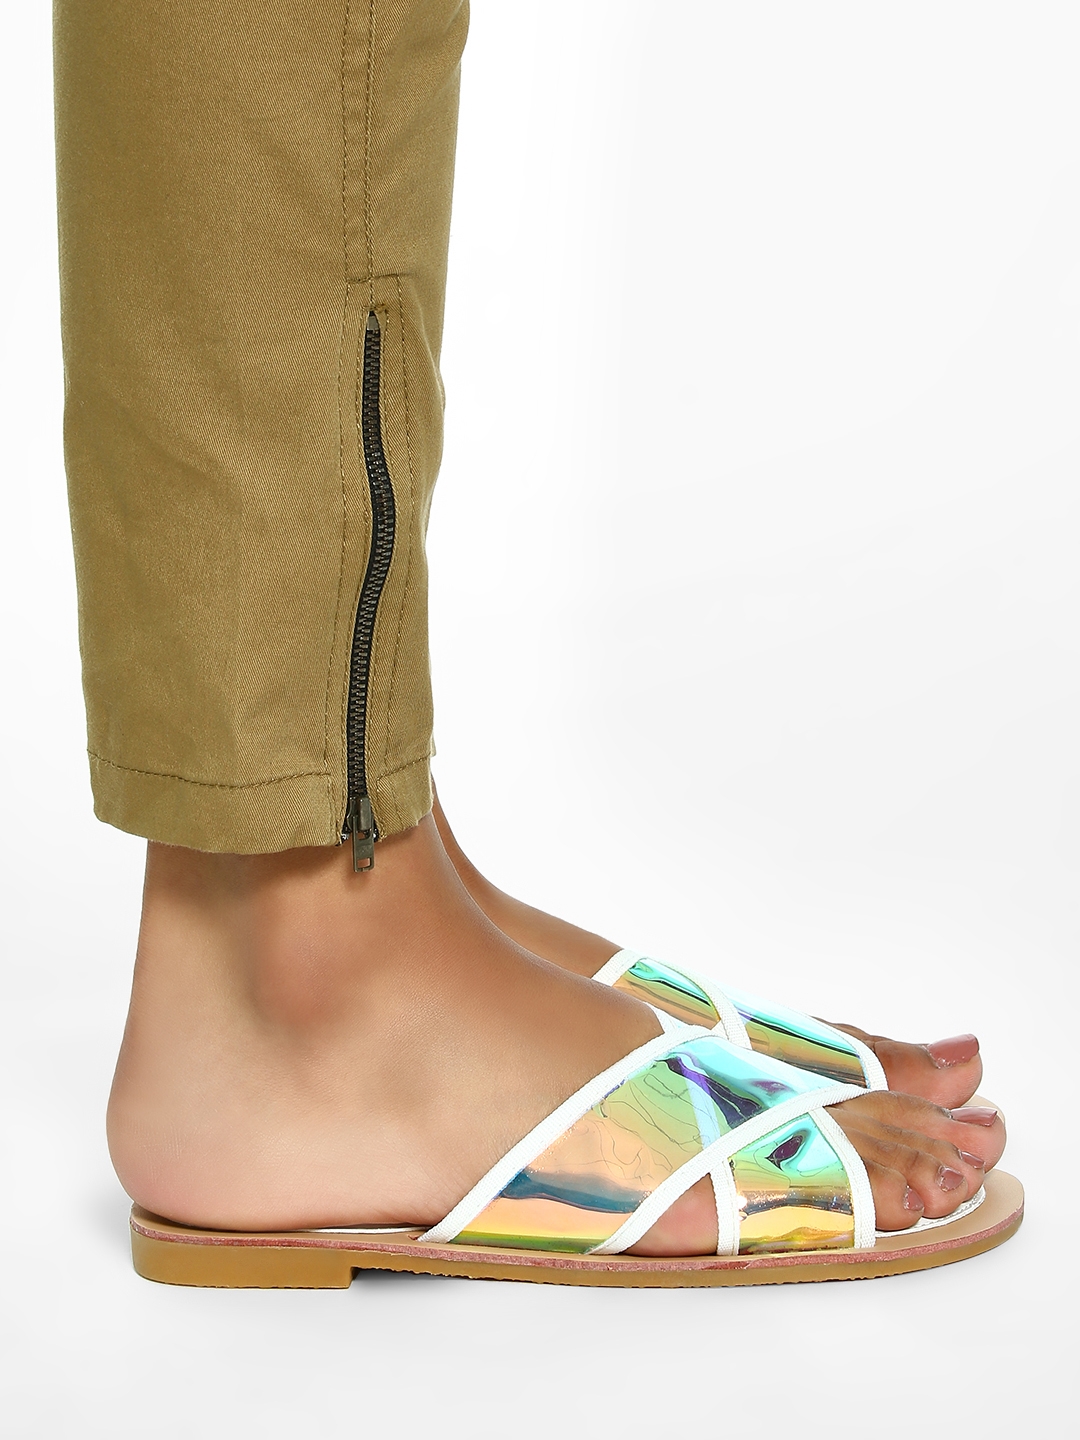 Sole Story White Holographic Cross Strap Flat Sandals 1